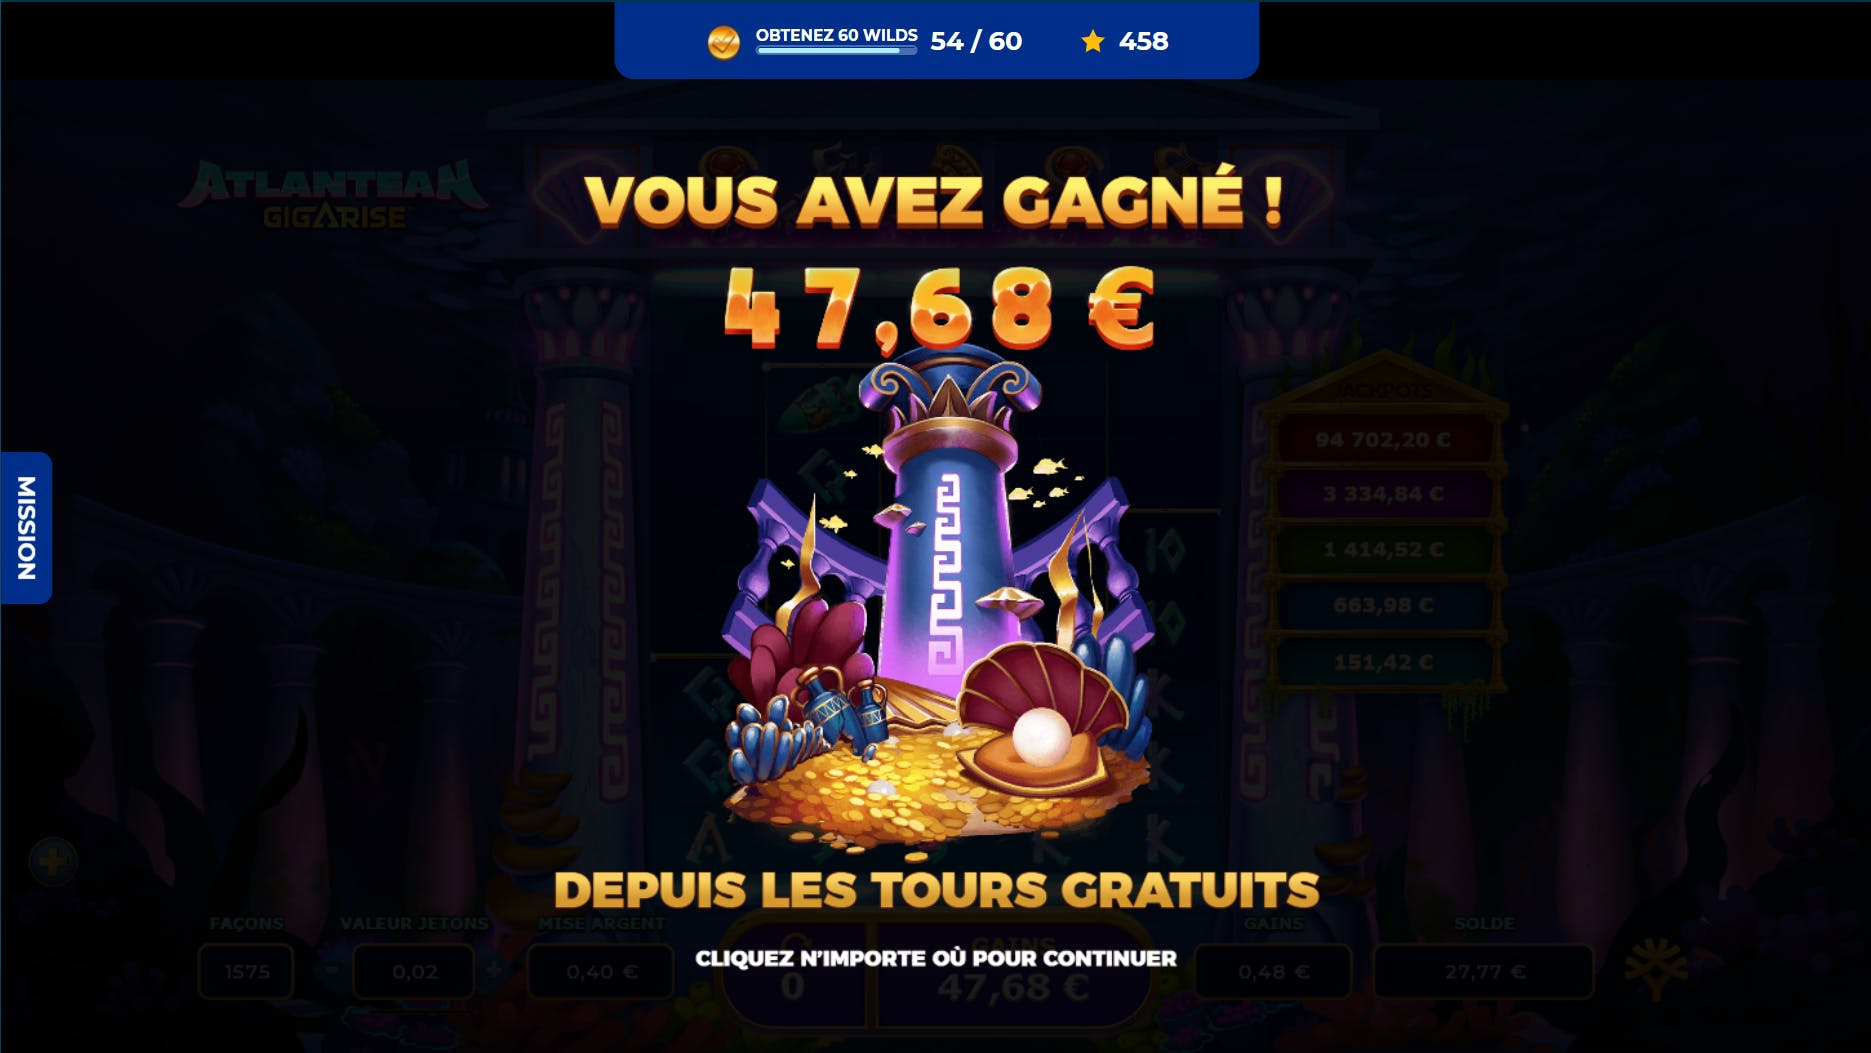 concours prince ali gameplay altlantean gigarise